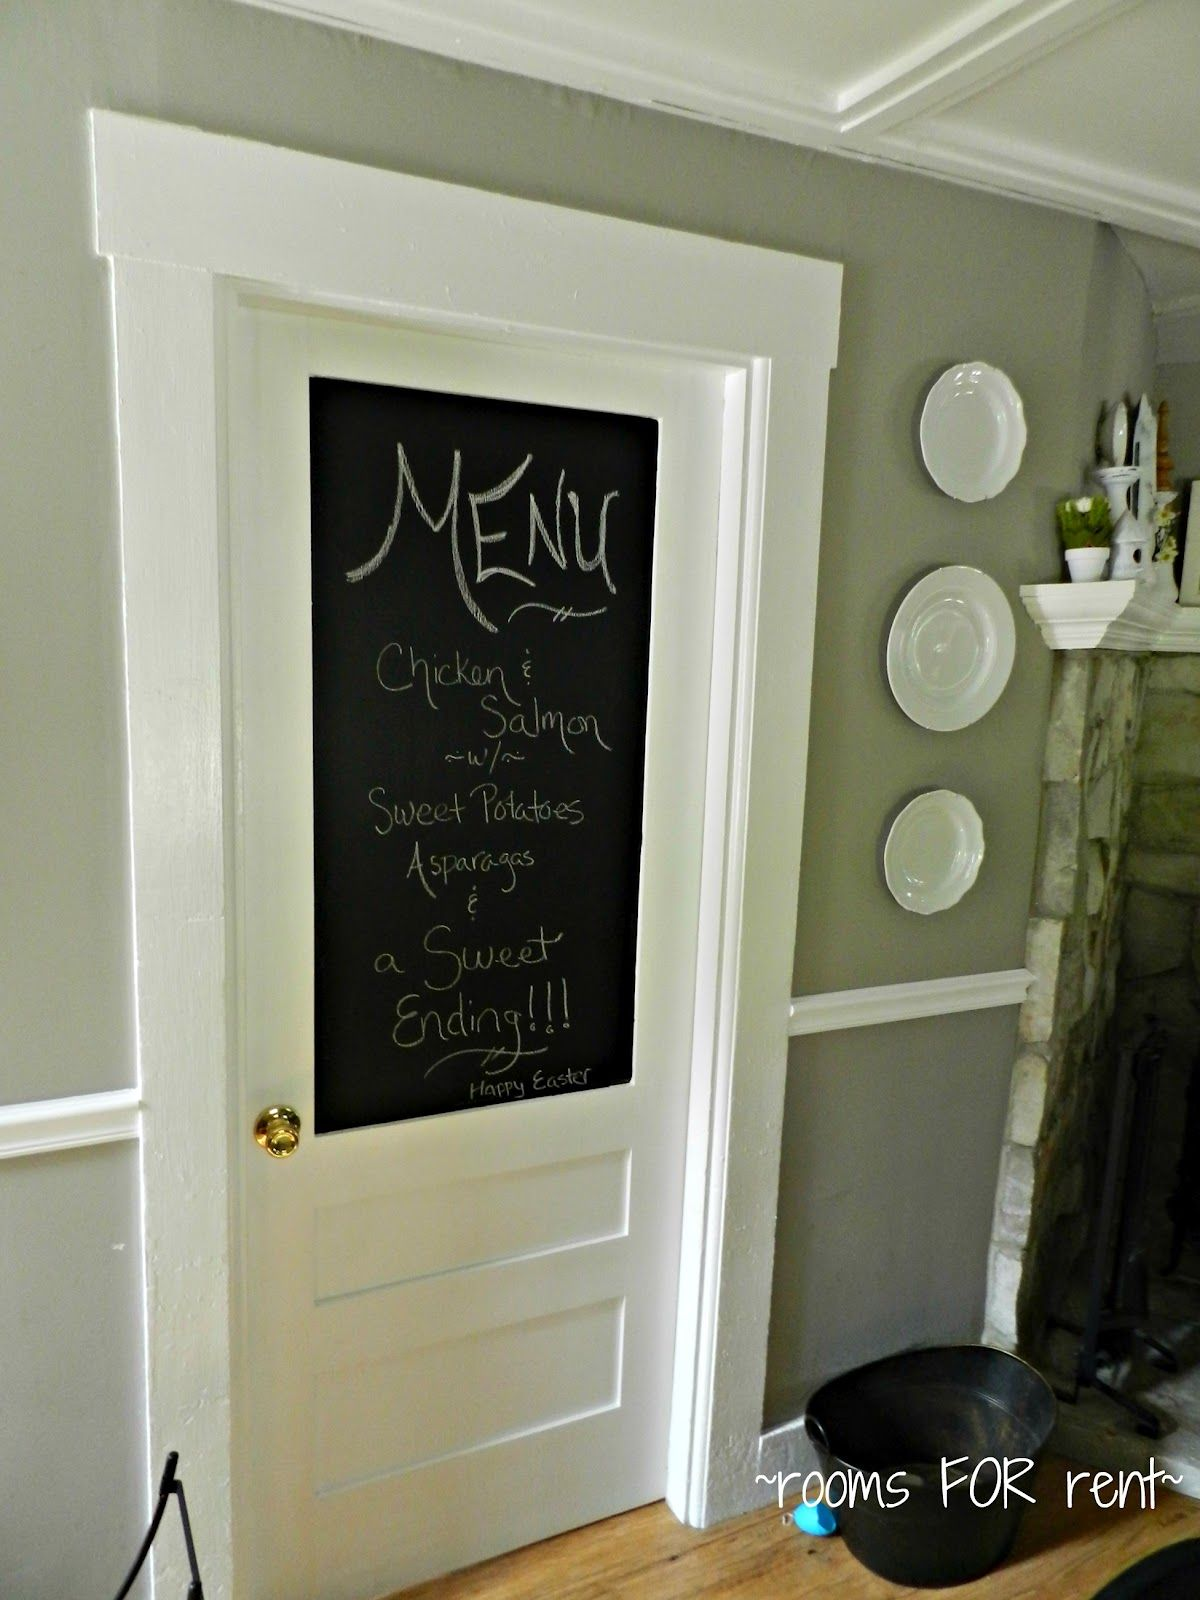 Rooms For Rent Touches Of Spring Chalkboard Door Reveal